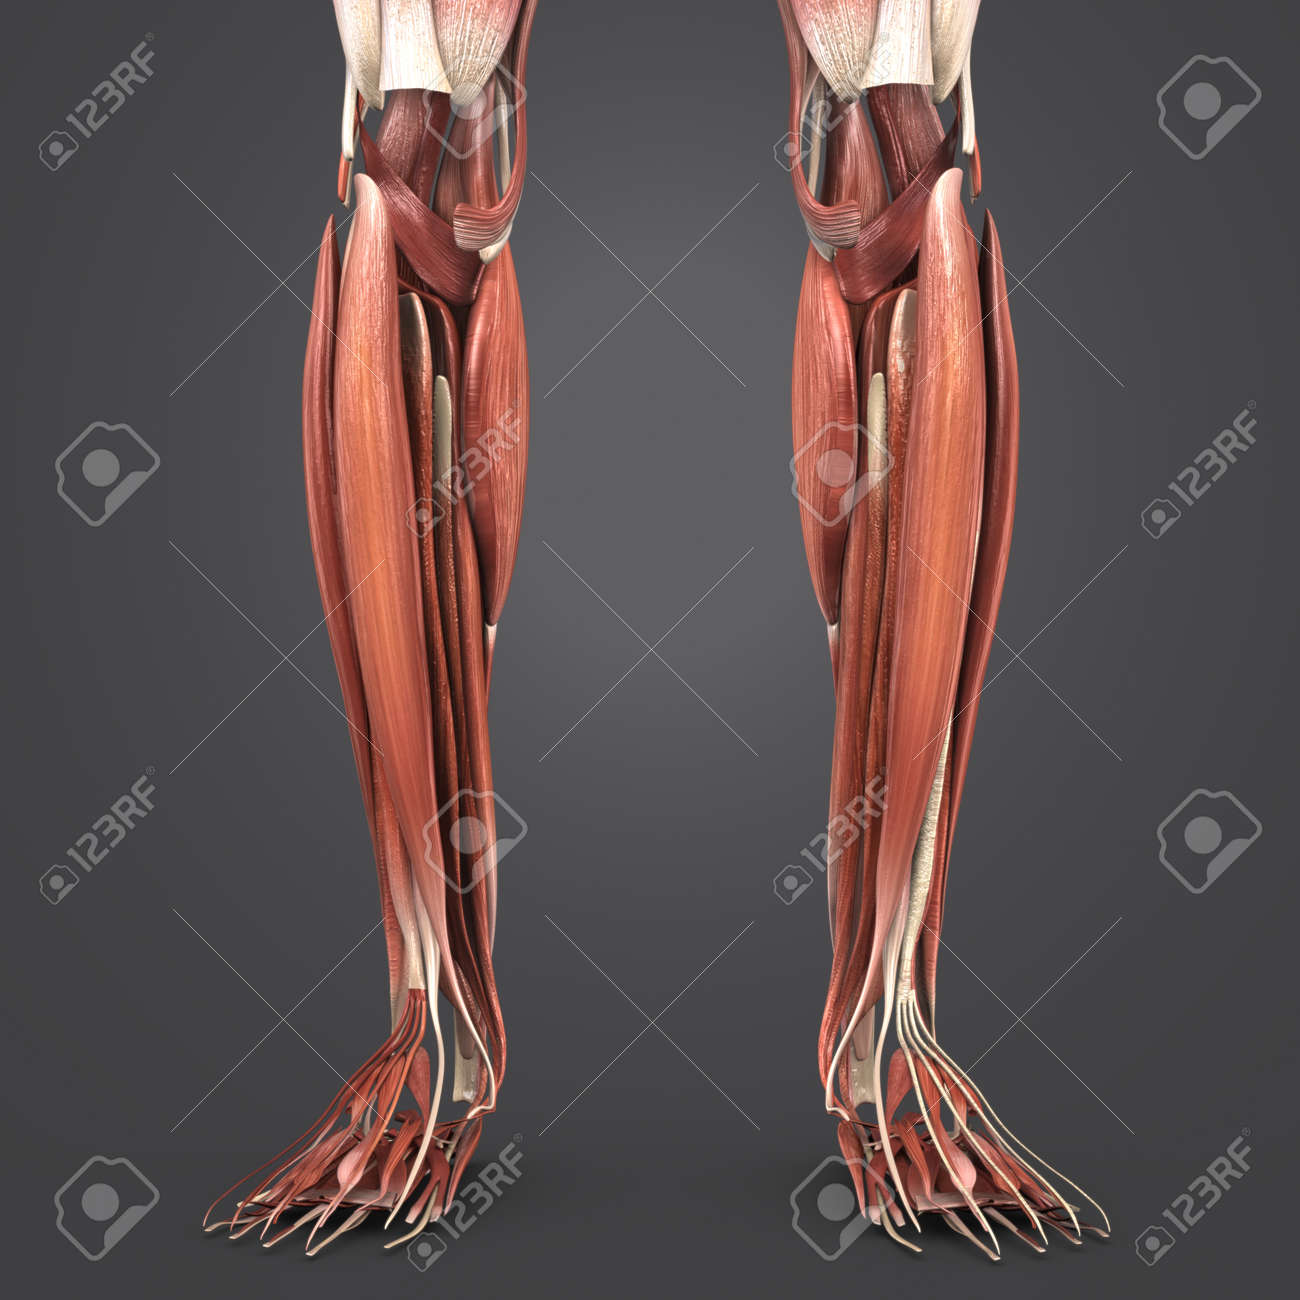 Leg Muscles Anatomy Stock Photo Picture And Royalty Free Image